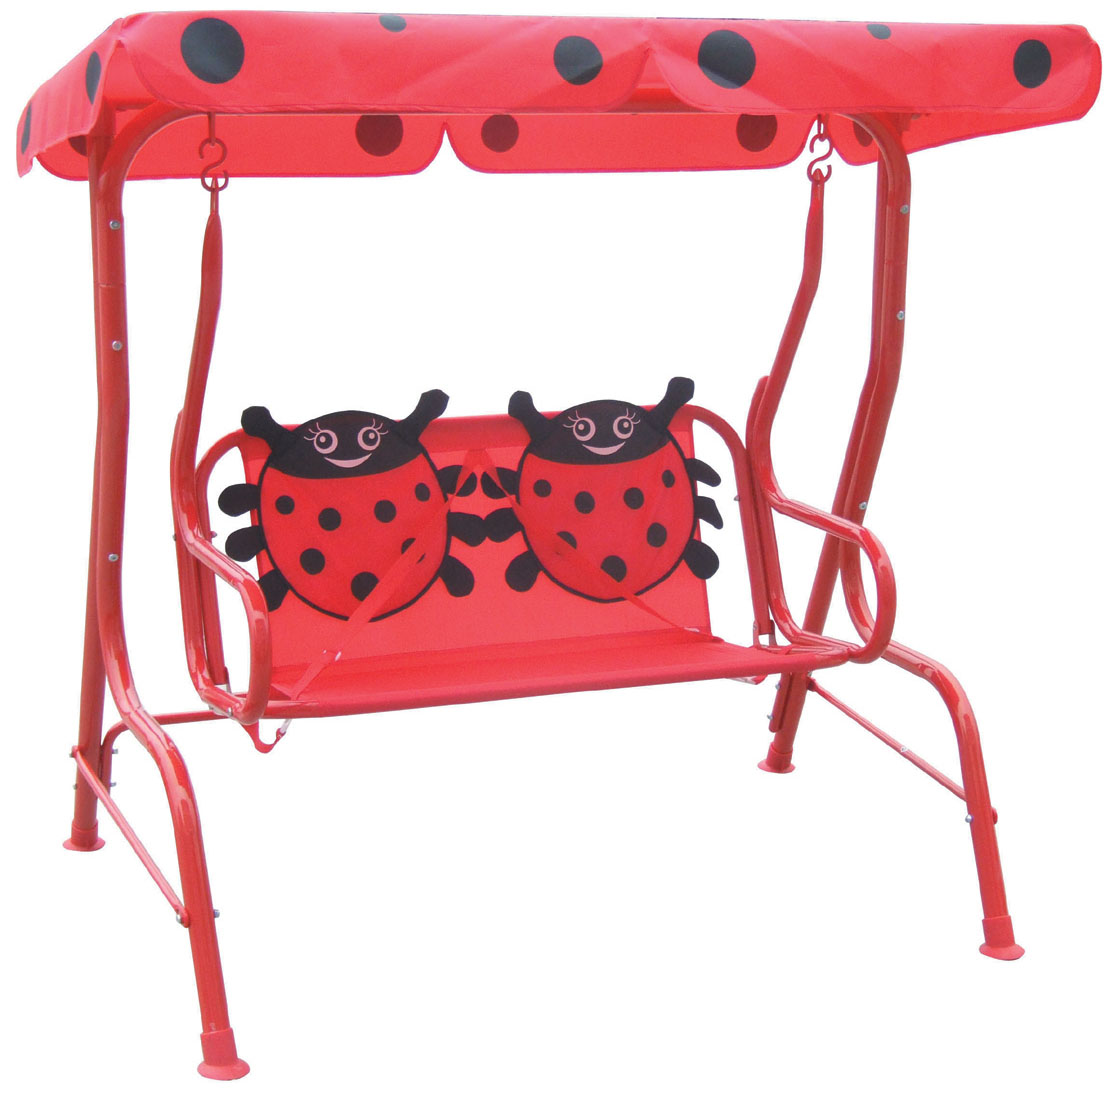 Kids Outside Chairs Far East Brokers Recalls Ladybug Themed Kids Outdoor